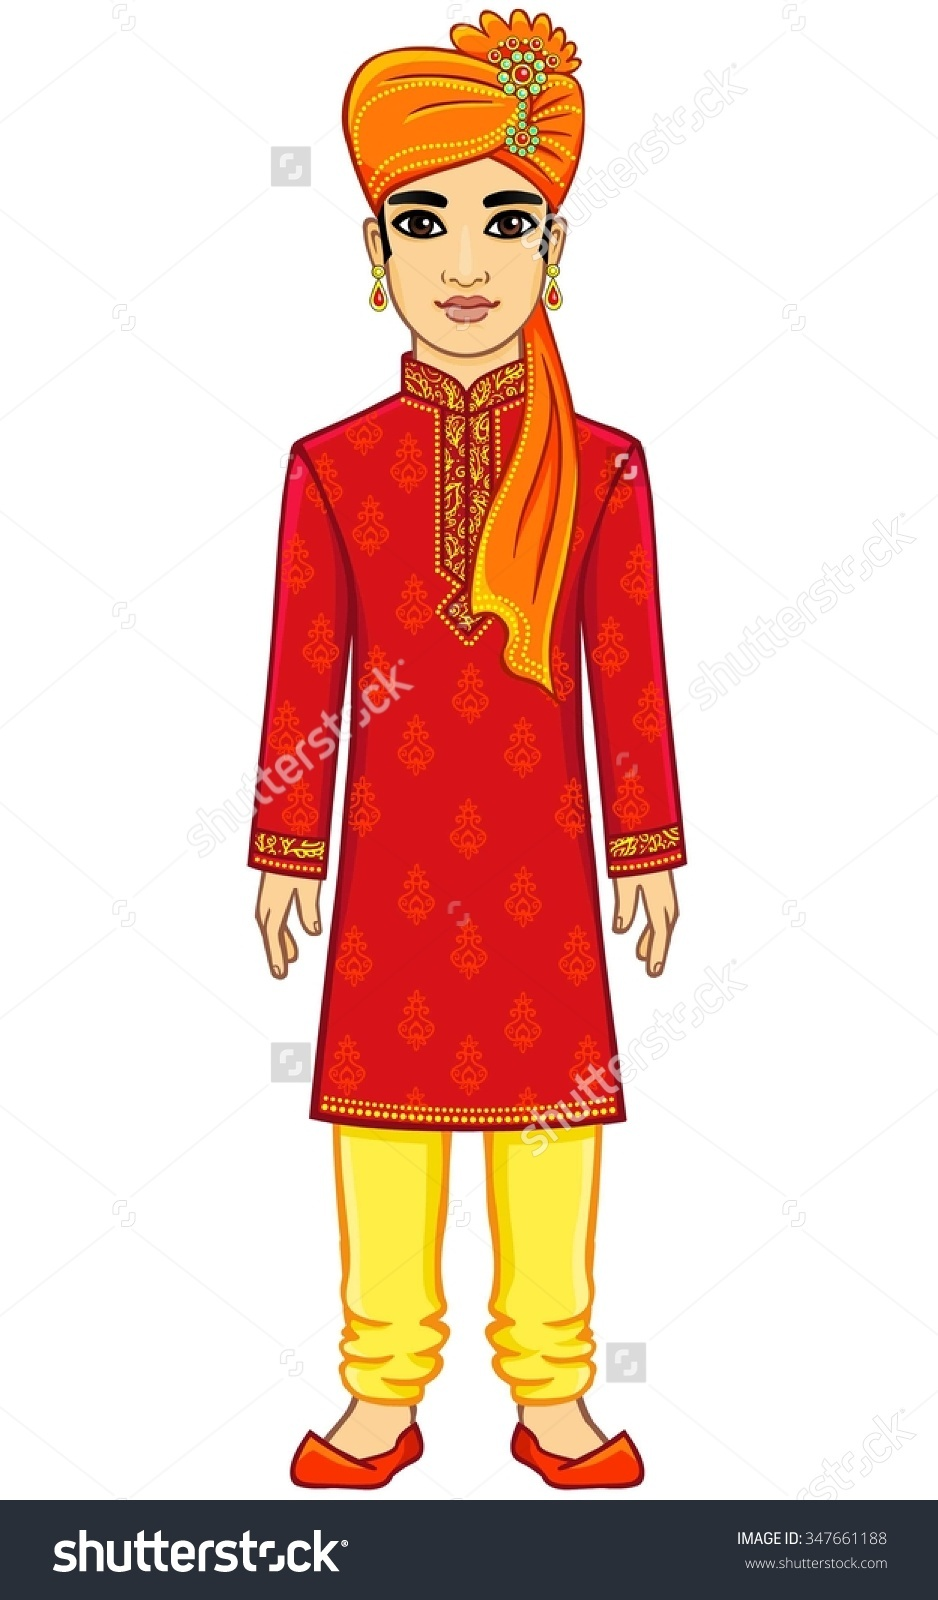 Indian person clipart.